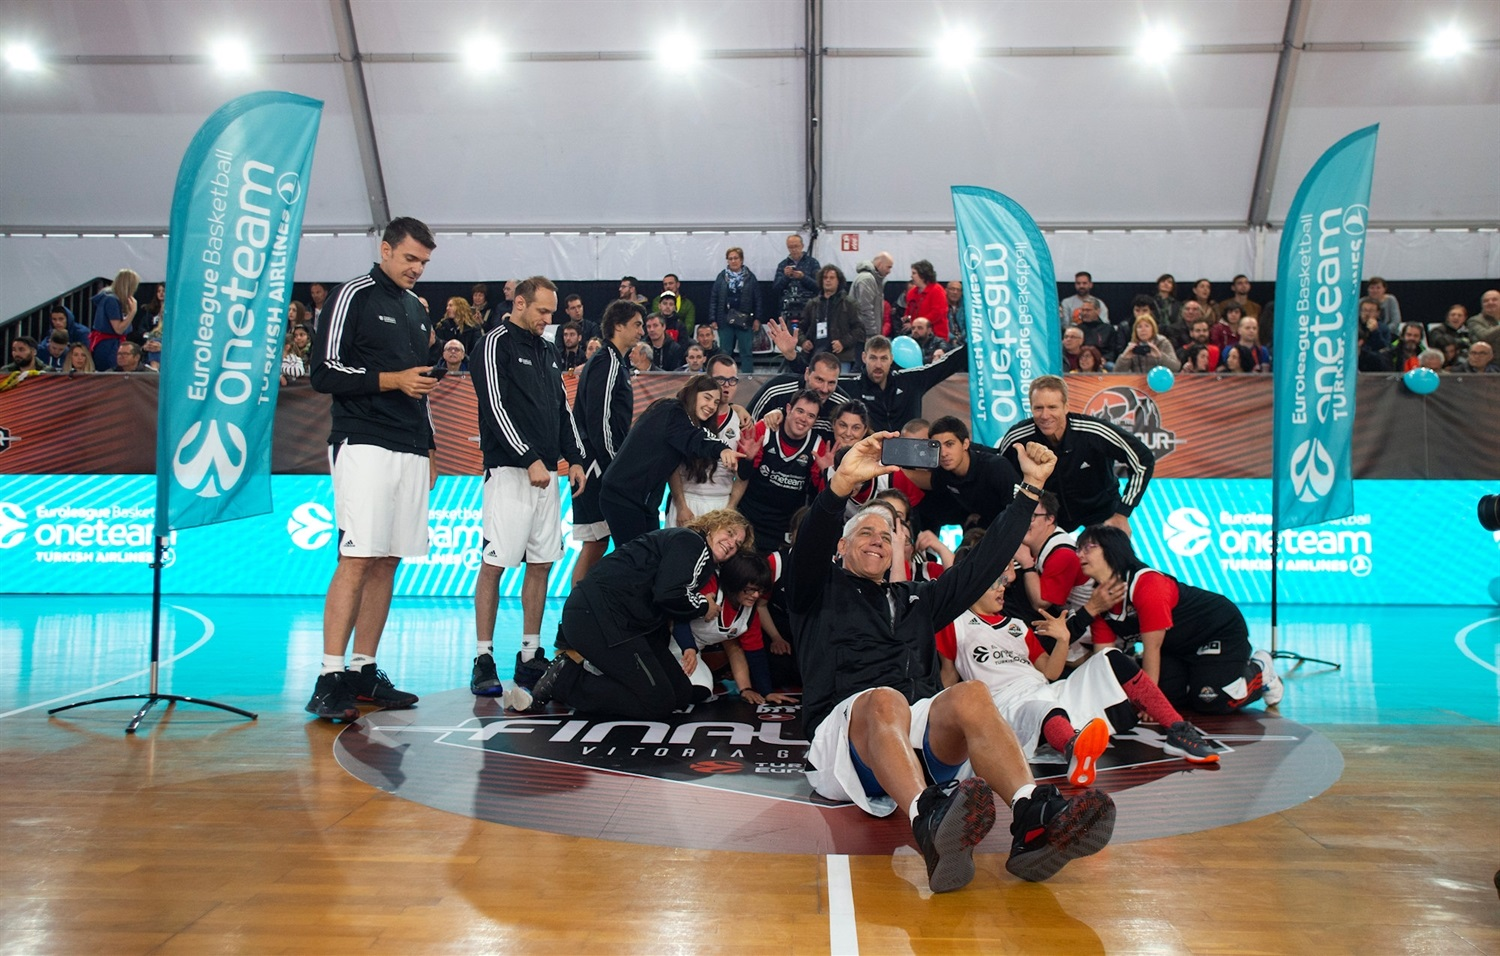 One Team Session at FanZone - Final Four Vitoria-Gasteiz 2019 - EB18